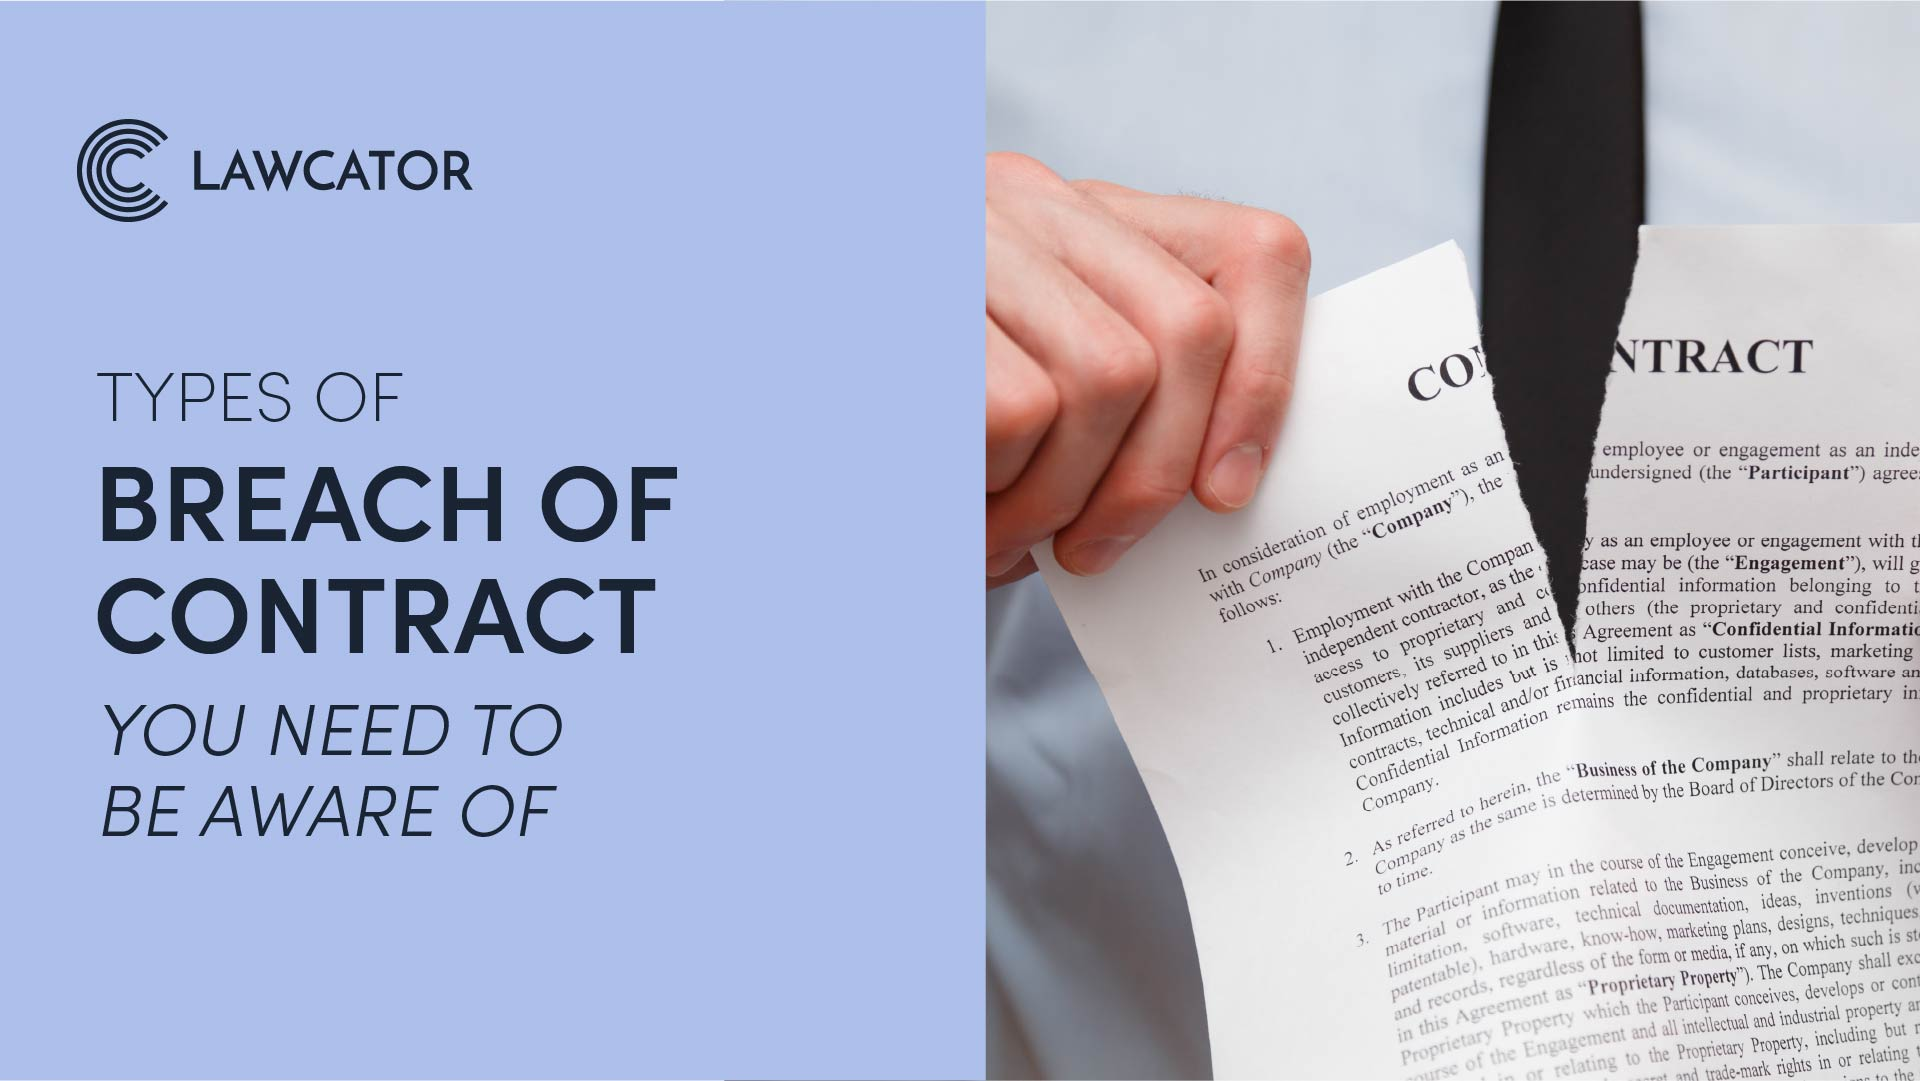 Types of breach of contract you need to be aware of